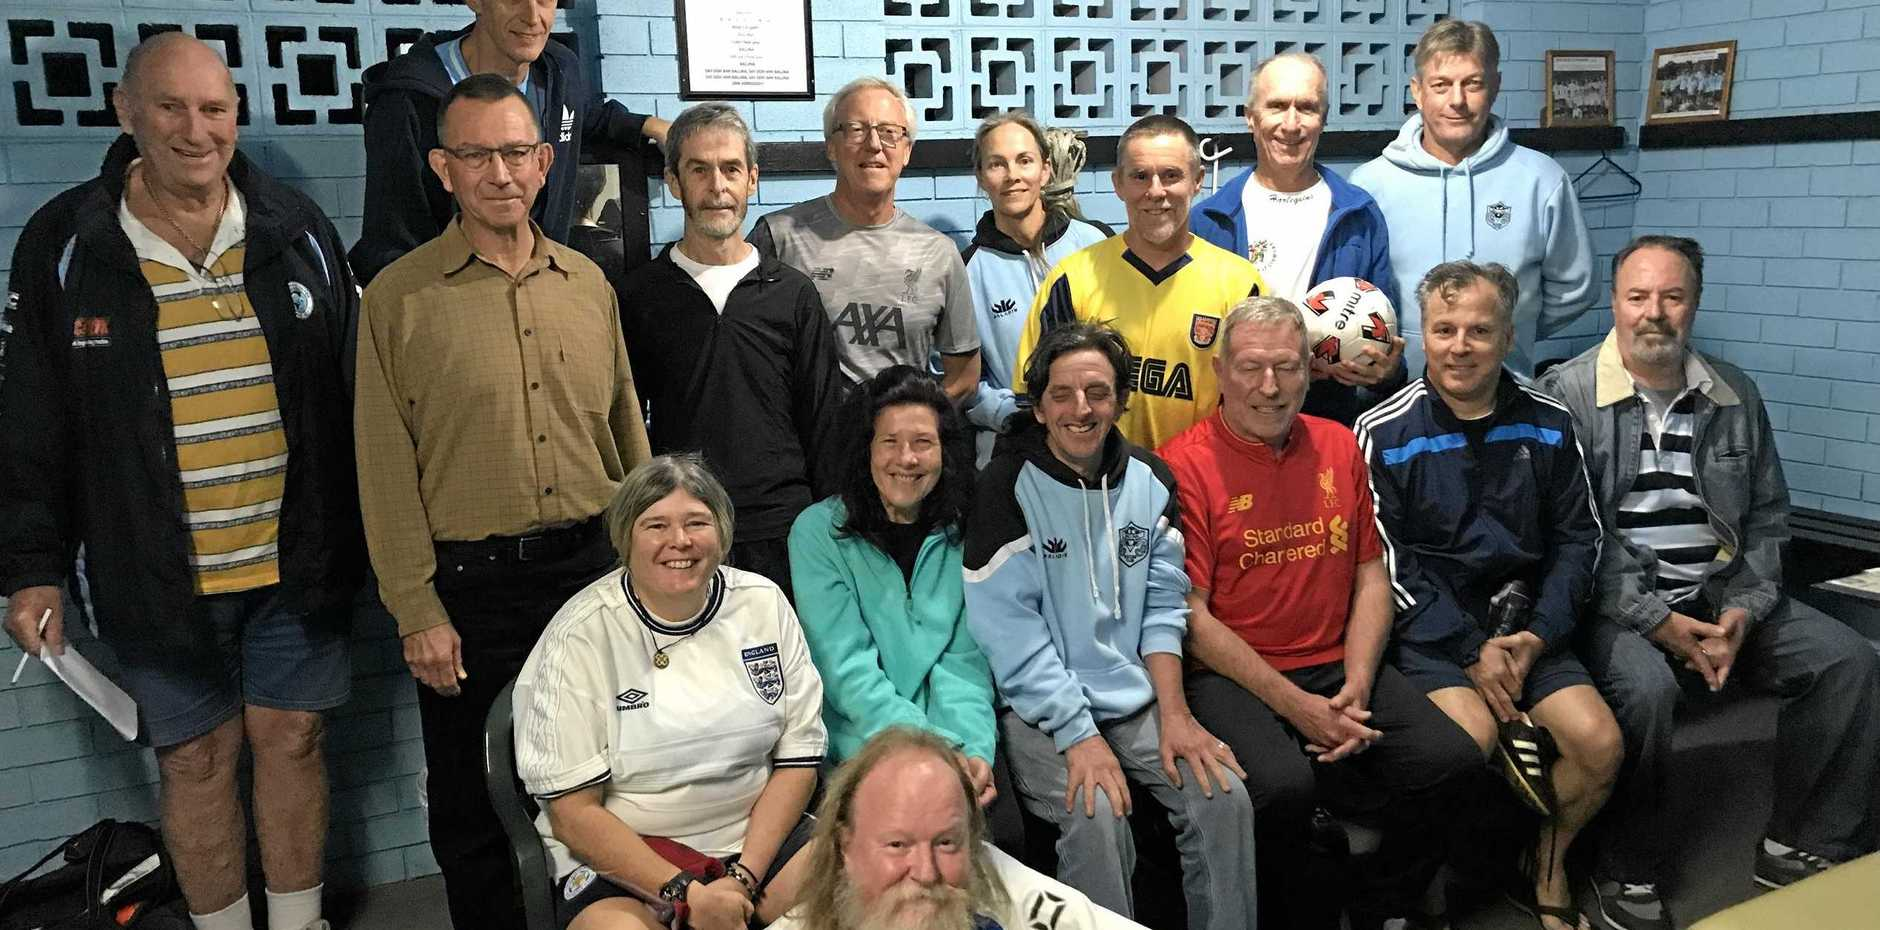 FOOTIE FANS: John Galletly (middle grey top) and Paul Connellan (holding the ball) with some of the crew.